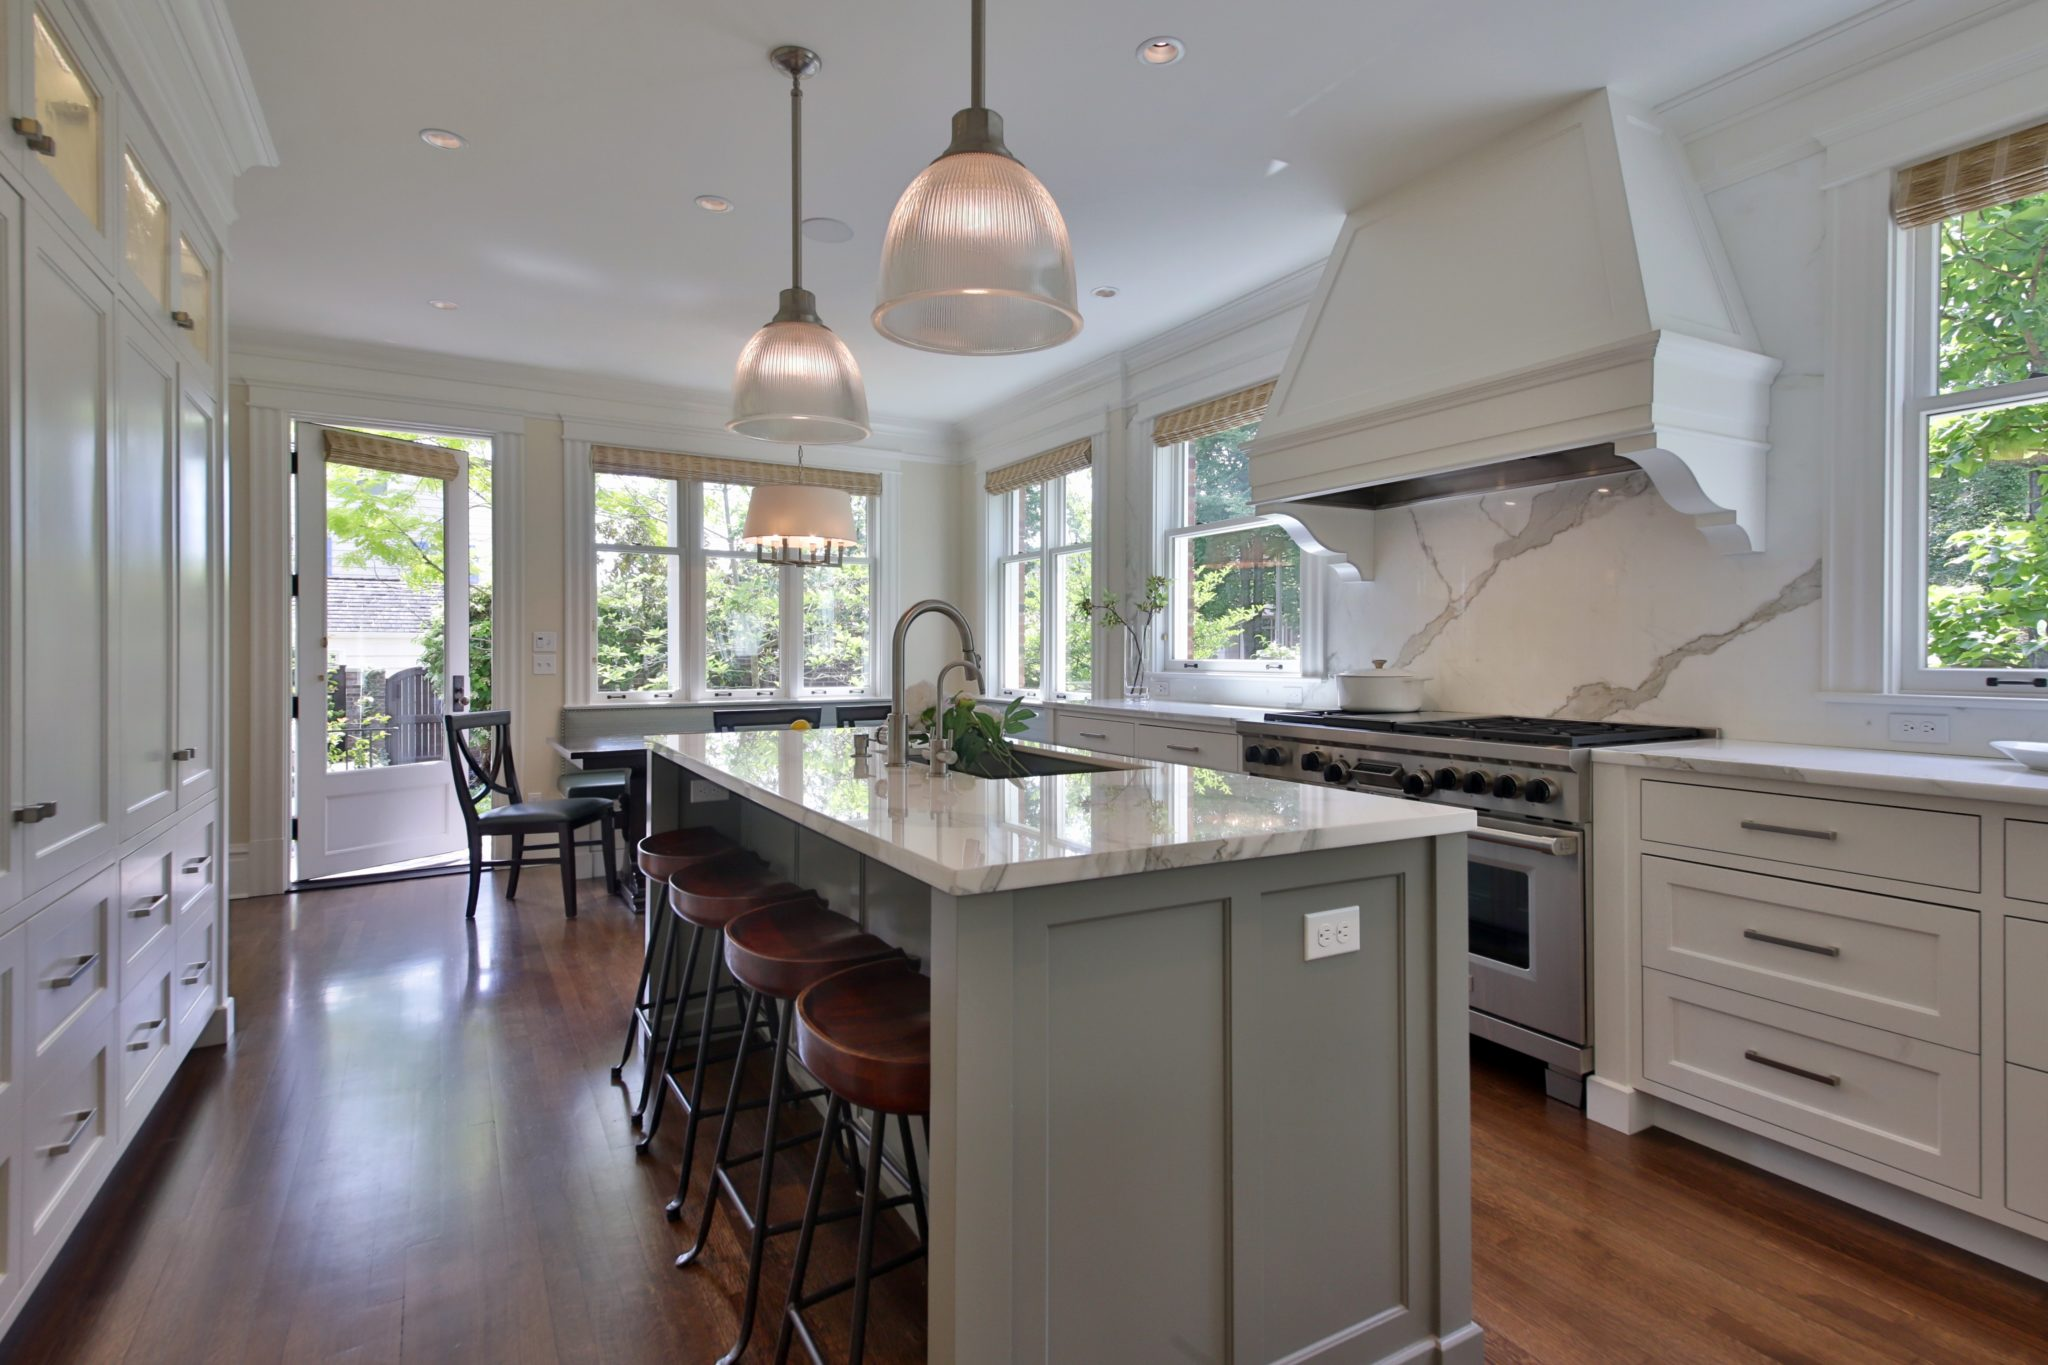 Seattle kitchen with gray island, white cabinets and hood, and marble backsplash by LeeAnn Baker Interiors Ltd.